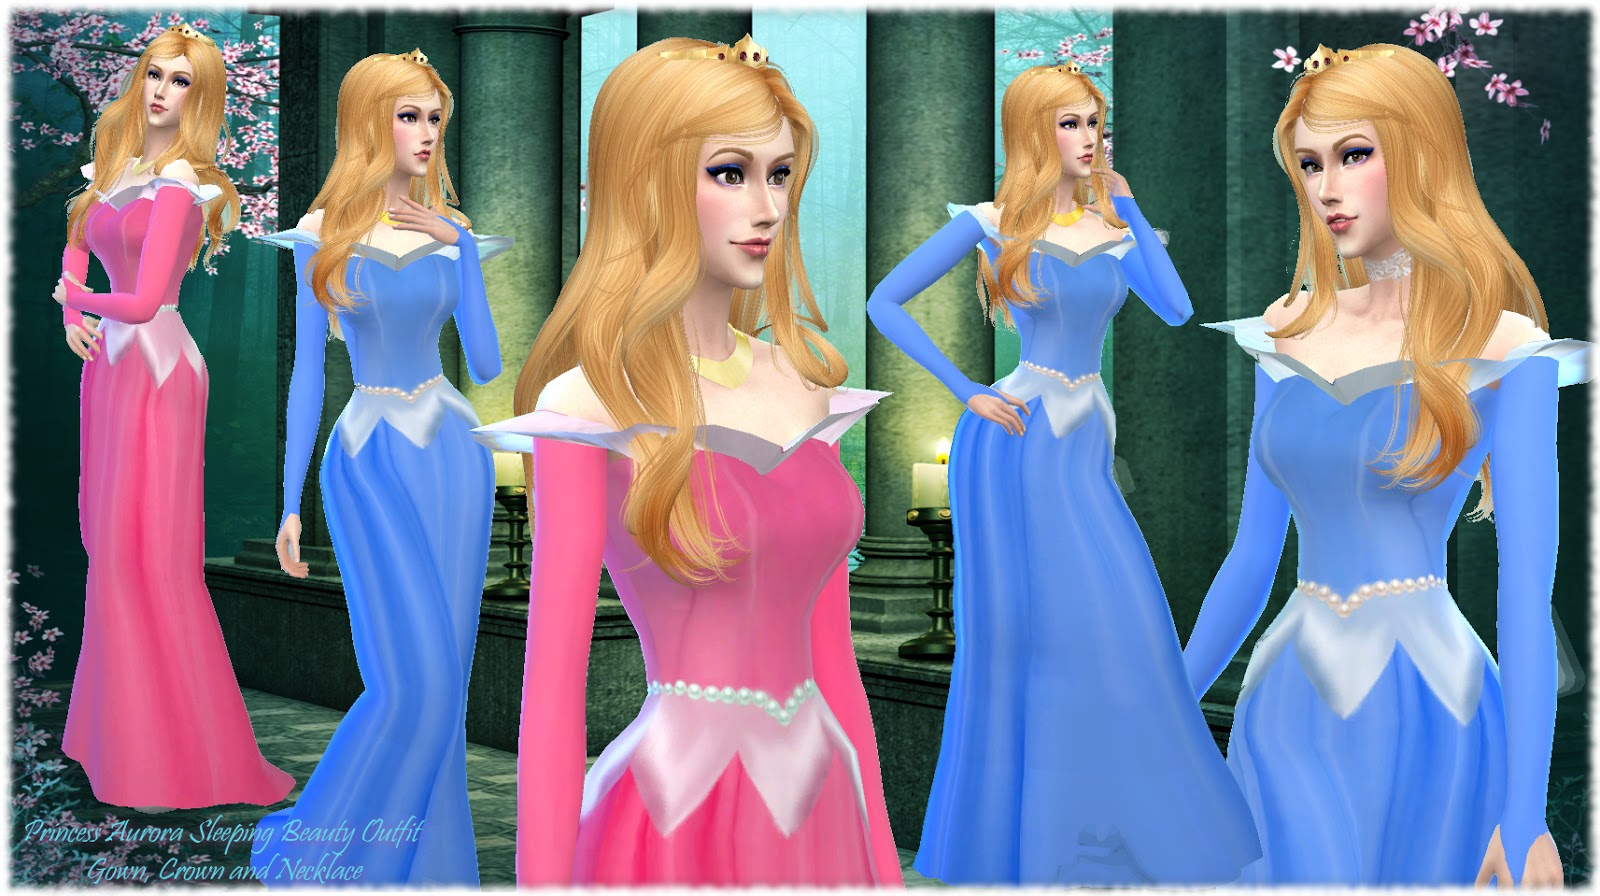 Sleeping Beauty Inspired Gown and Crown by Alin22